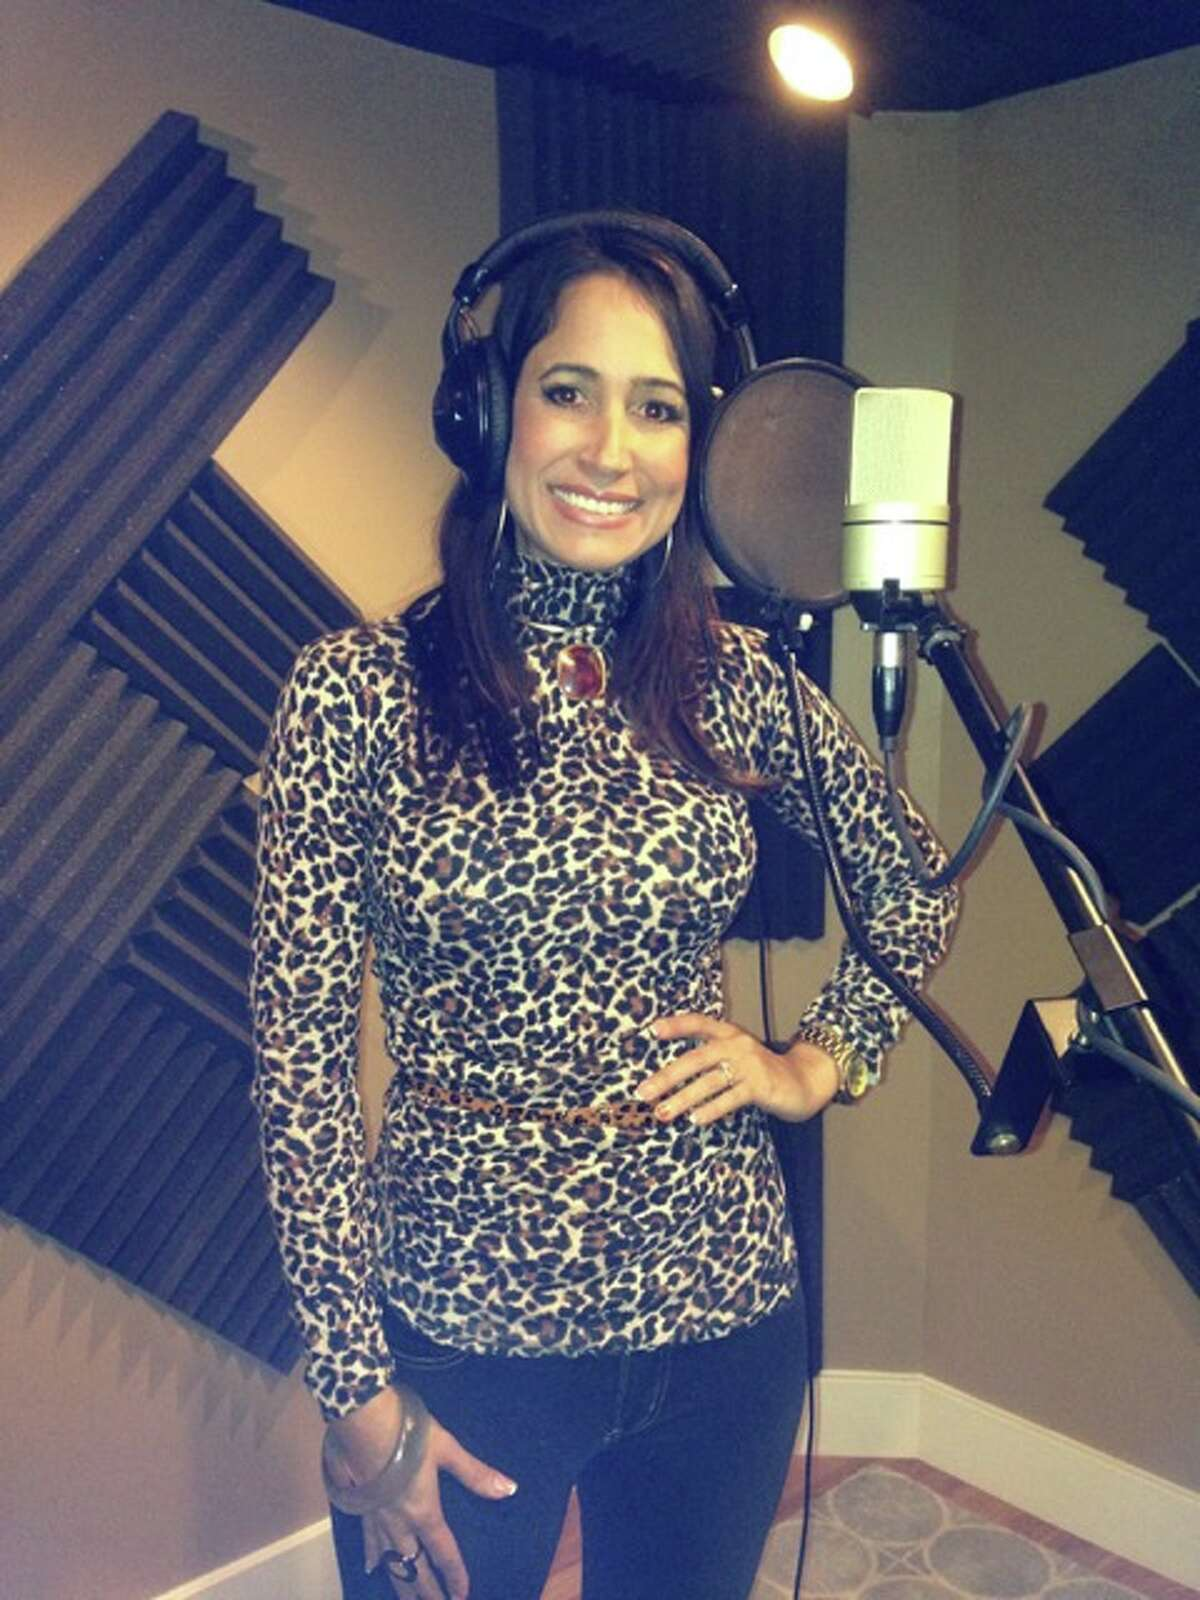 Rita Verreos of San Antonio said she recently scored an on-air job with iHeartRadio stations in Miami.